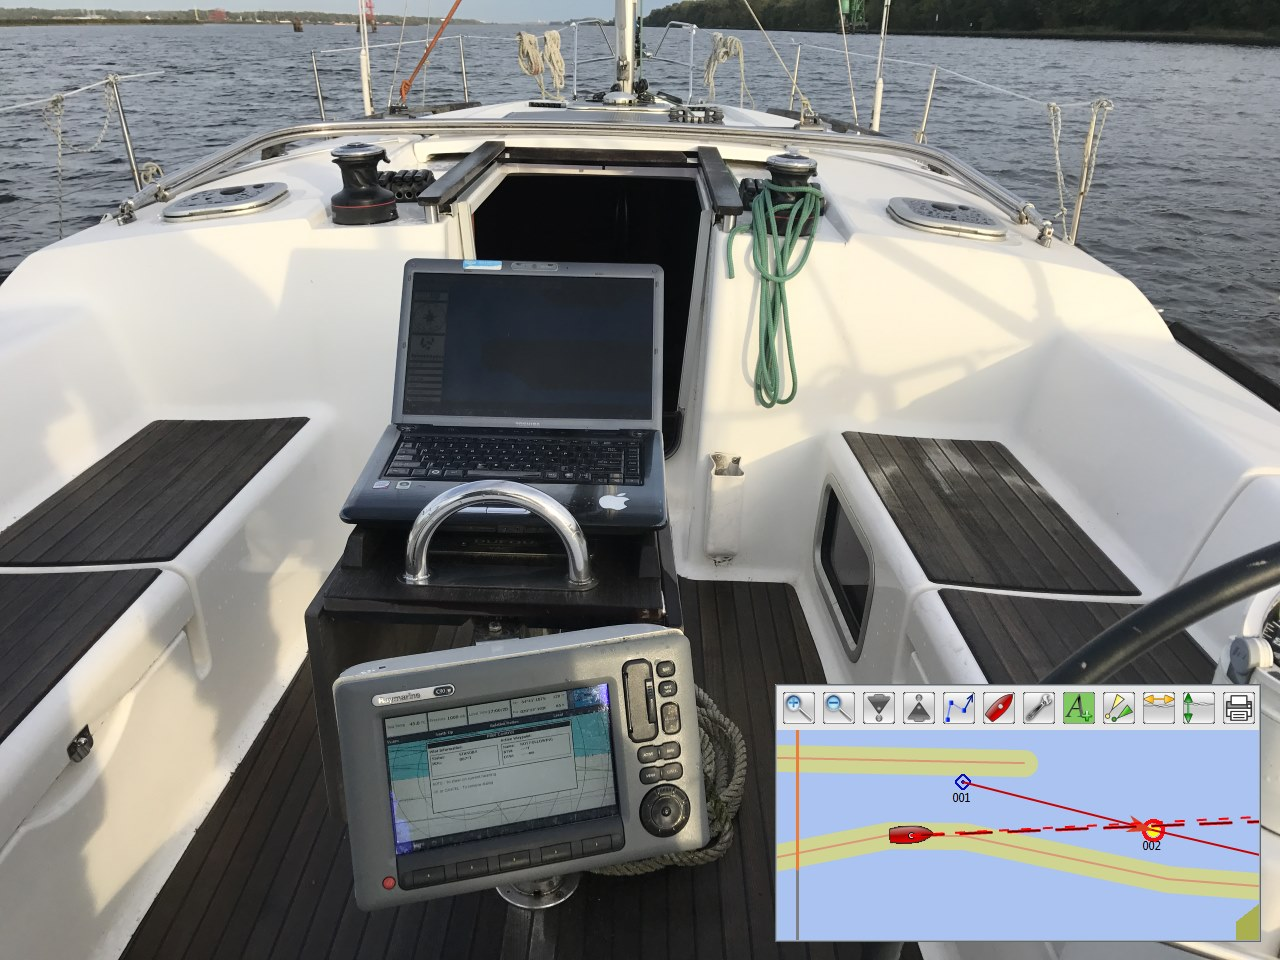 Sea trial of Raymarine autopilot and Wi-Fi Gateway